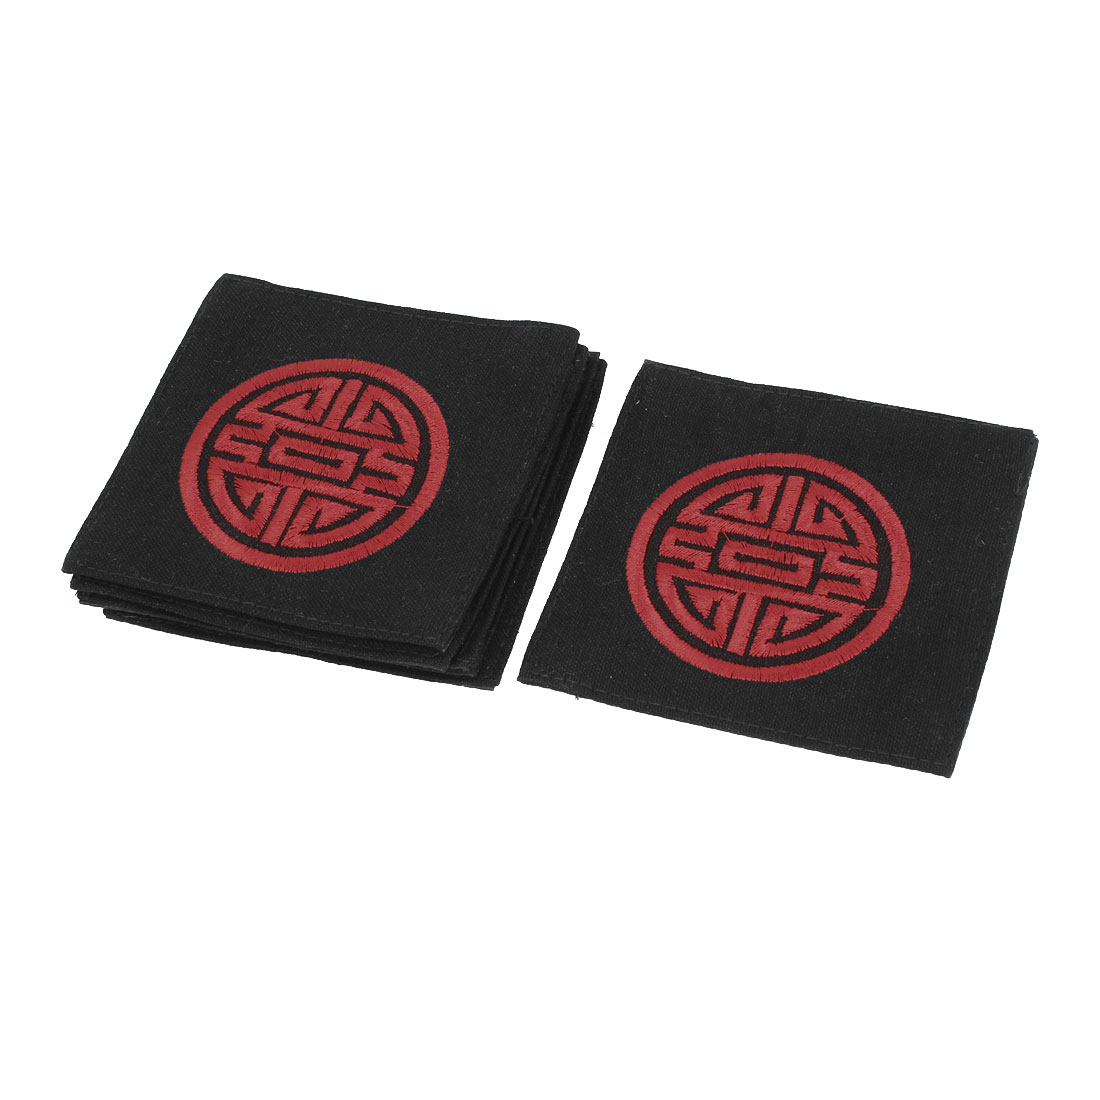 6 Pcs Heat Resistant Mat Cup Mug Classical Chinese Style Cushion Placemat Pad Black Red